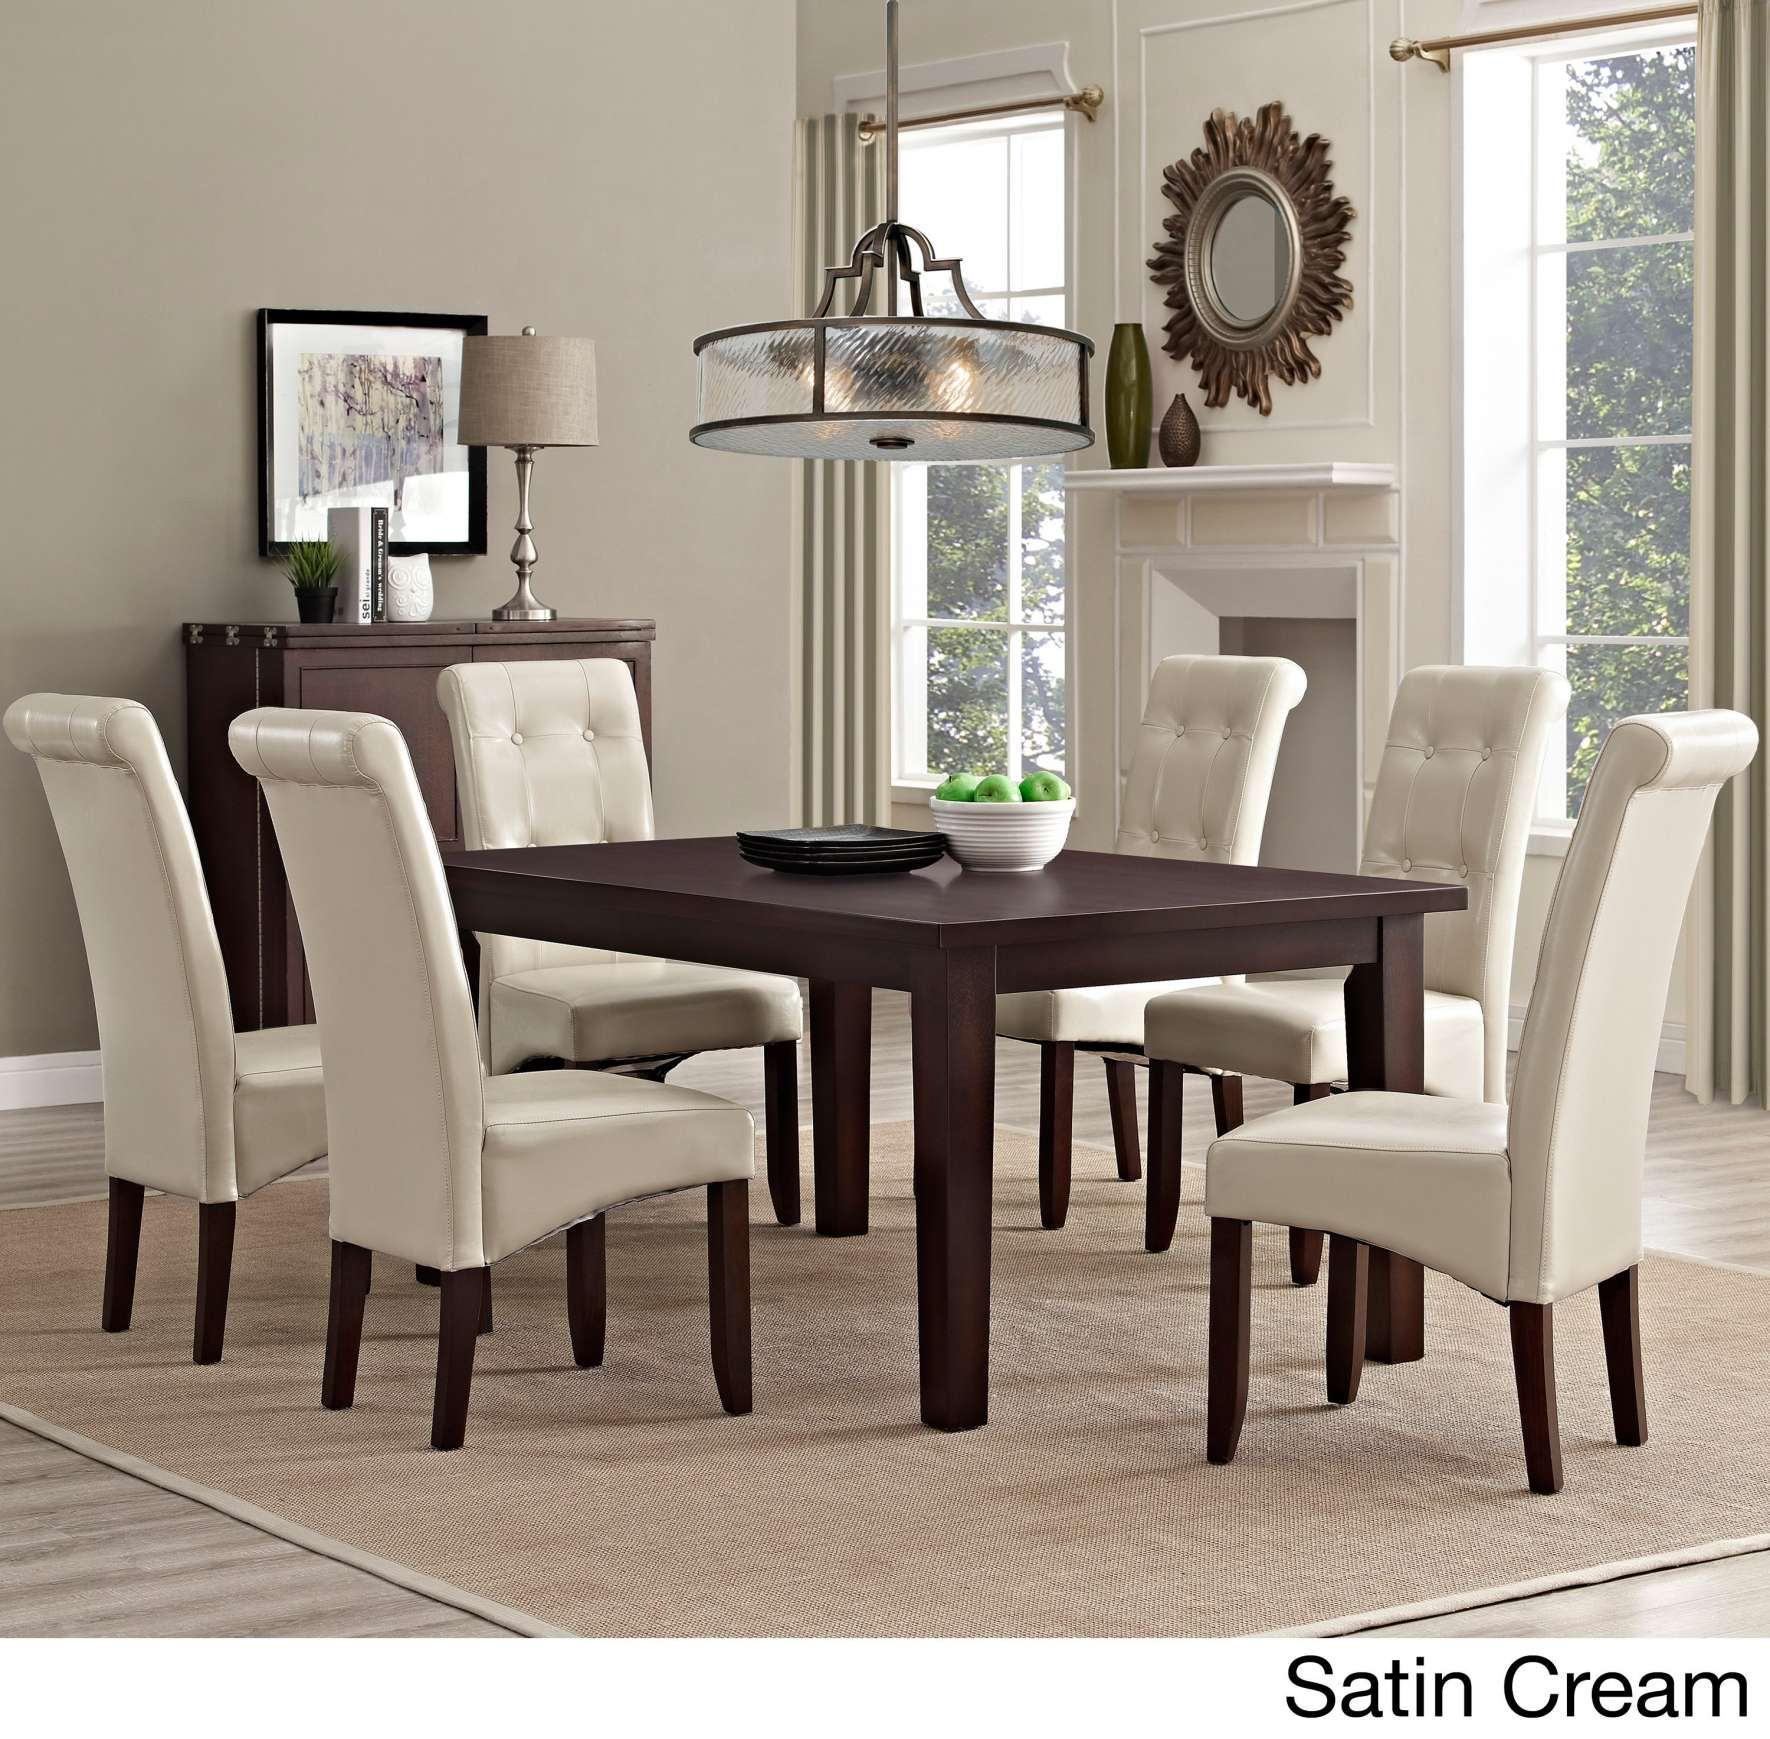 dining room accent pieces also small wall decor ideas meilleur scpi wyndenhall piece set free shipping table slim glass pottery barn gift registry antique nightstands plant stand